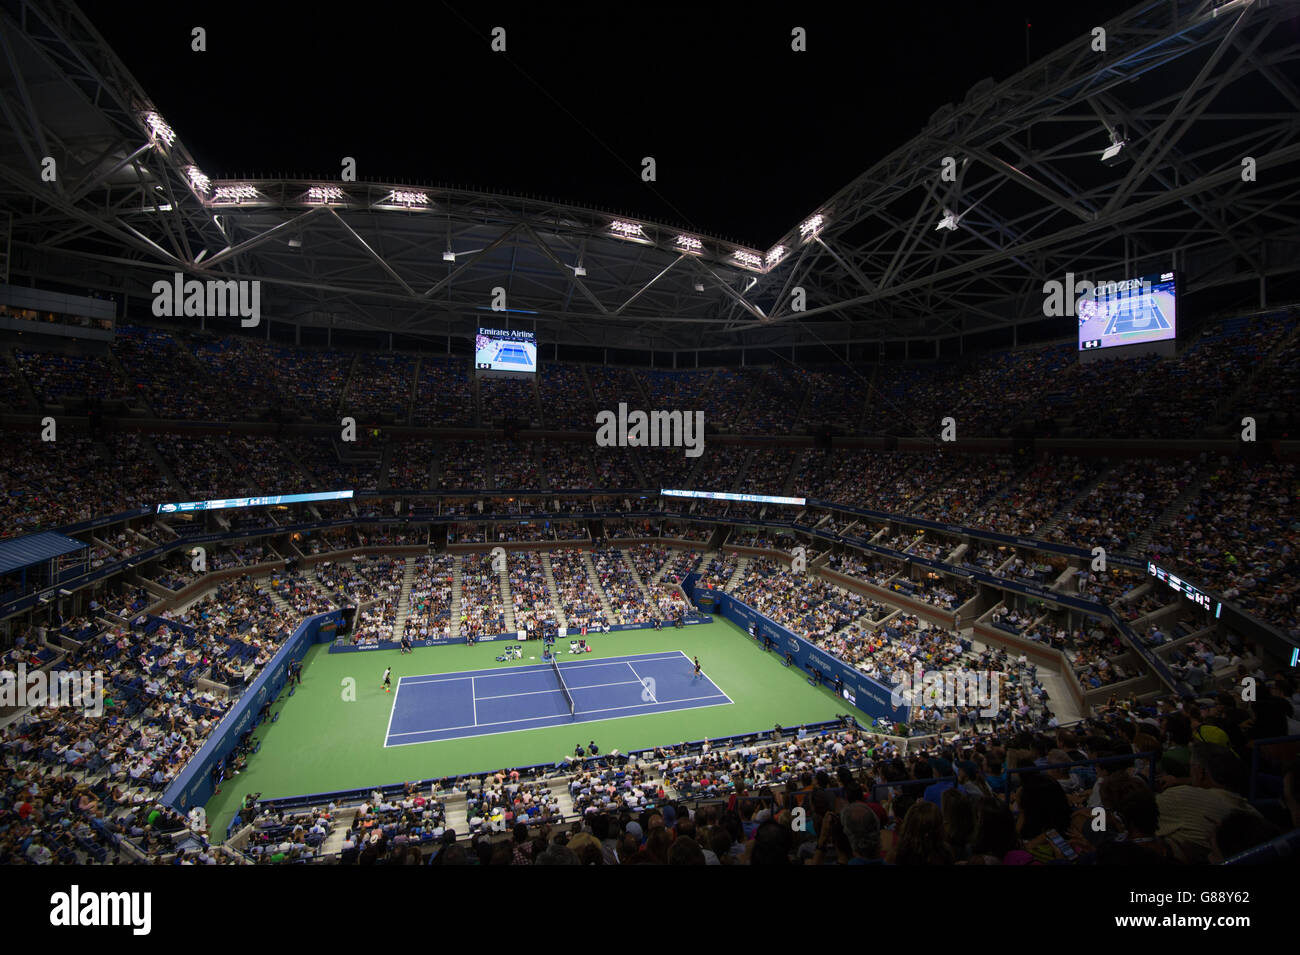 Tennis - 2015 US Open - Day Two - Billie Jean King National Tennis Center - Stock Image